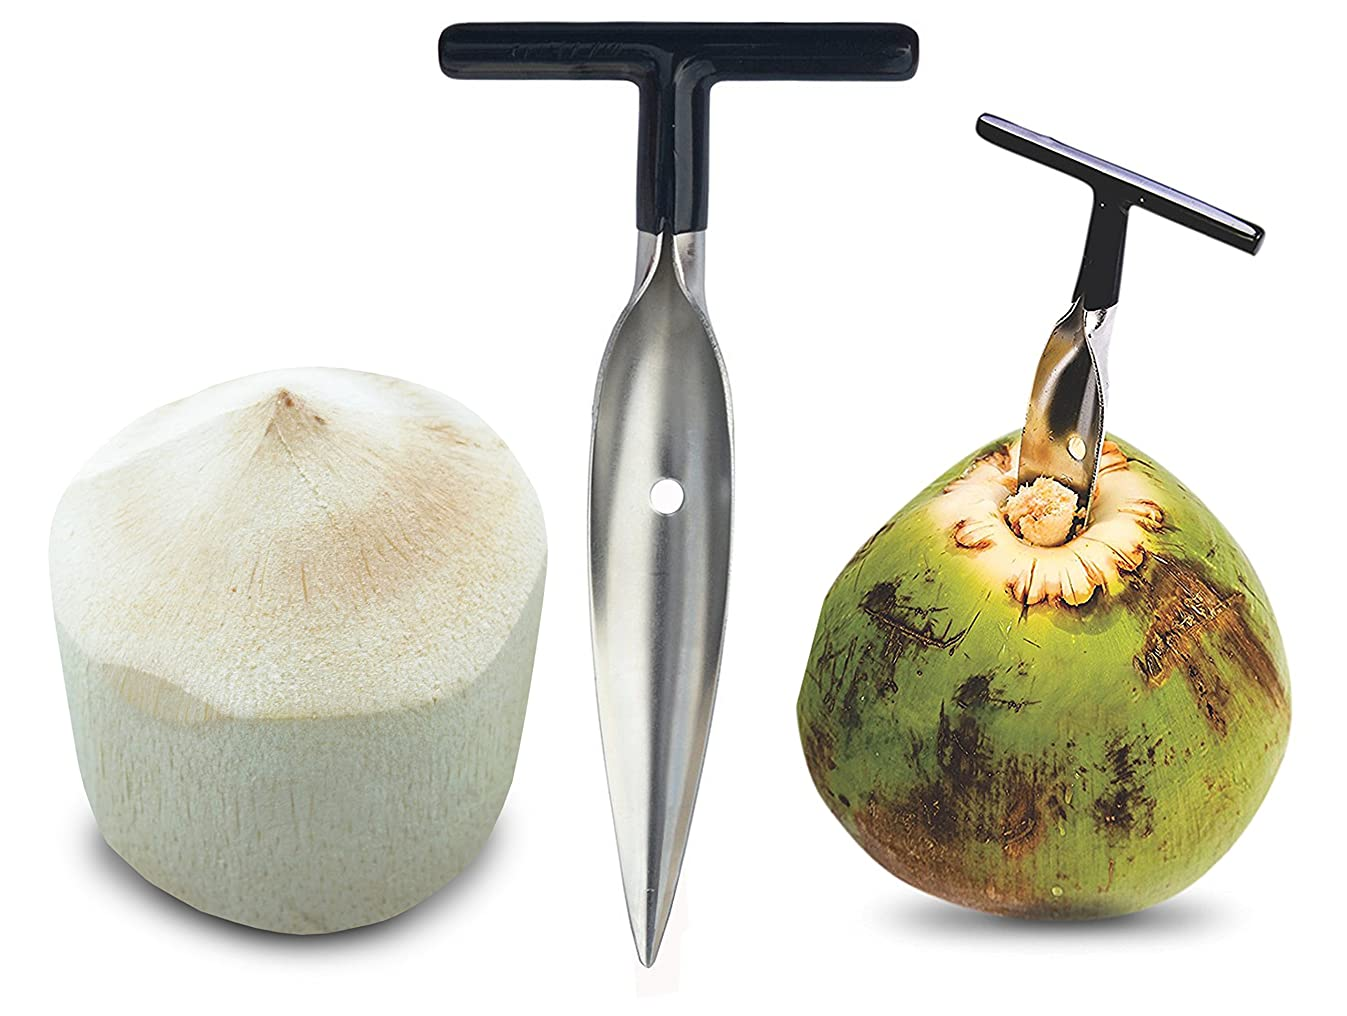 Stord Coconut Opener for Fresh Green Young Coconut Water - Works With Peeled Thai Young White Coconuts - Open in Seconds Super Safe Easy and Fast